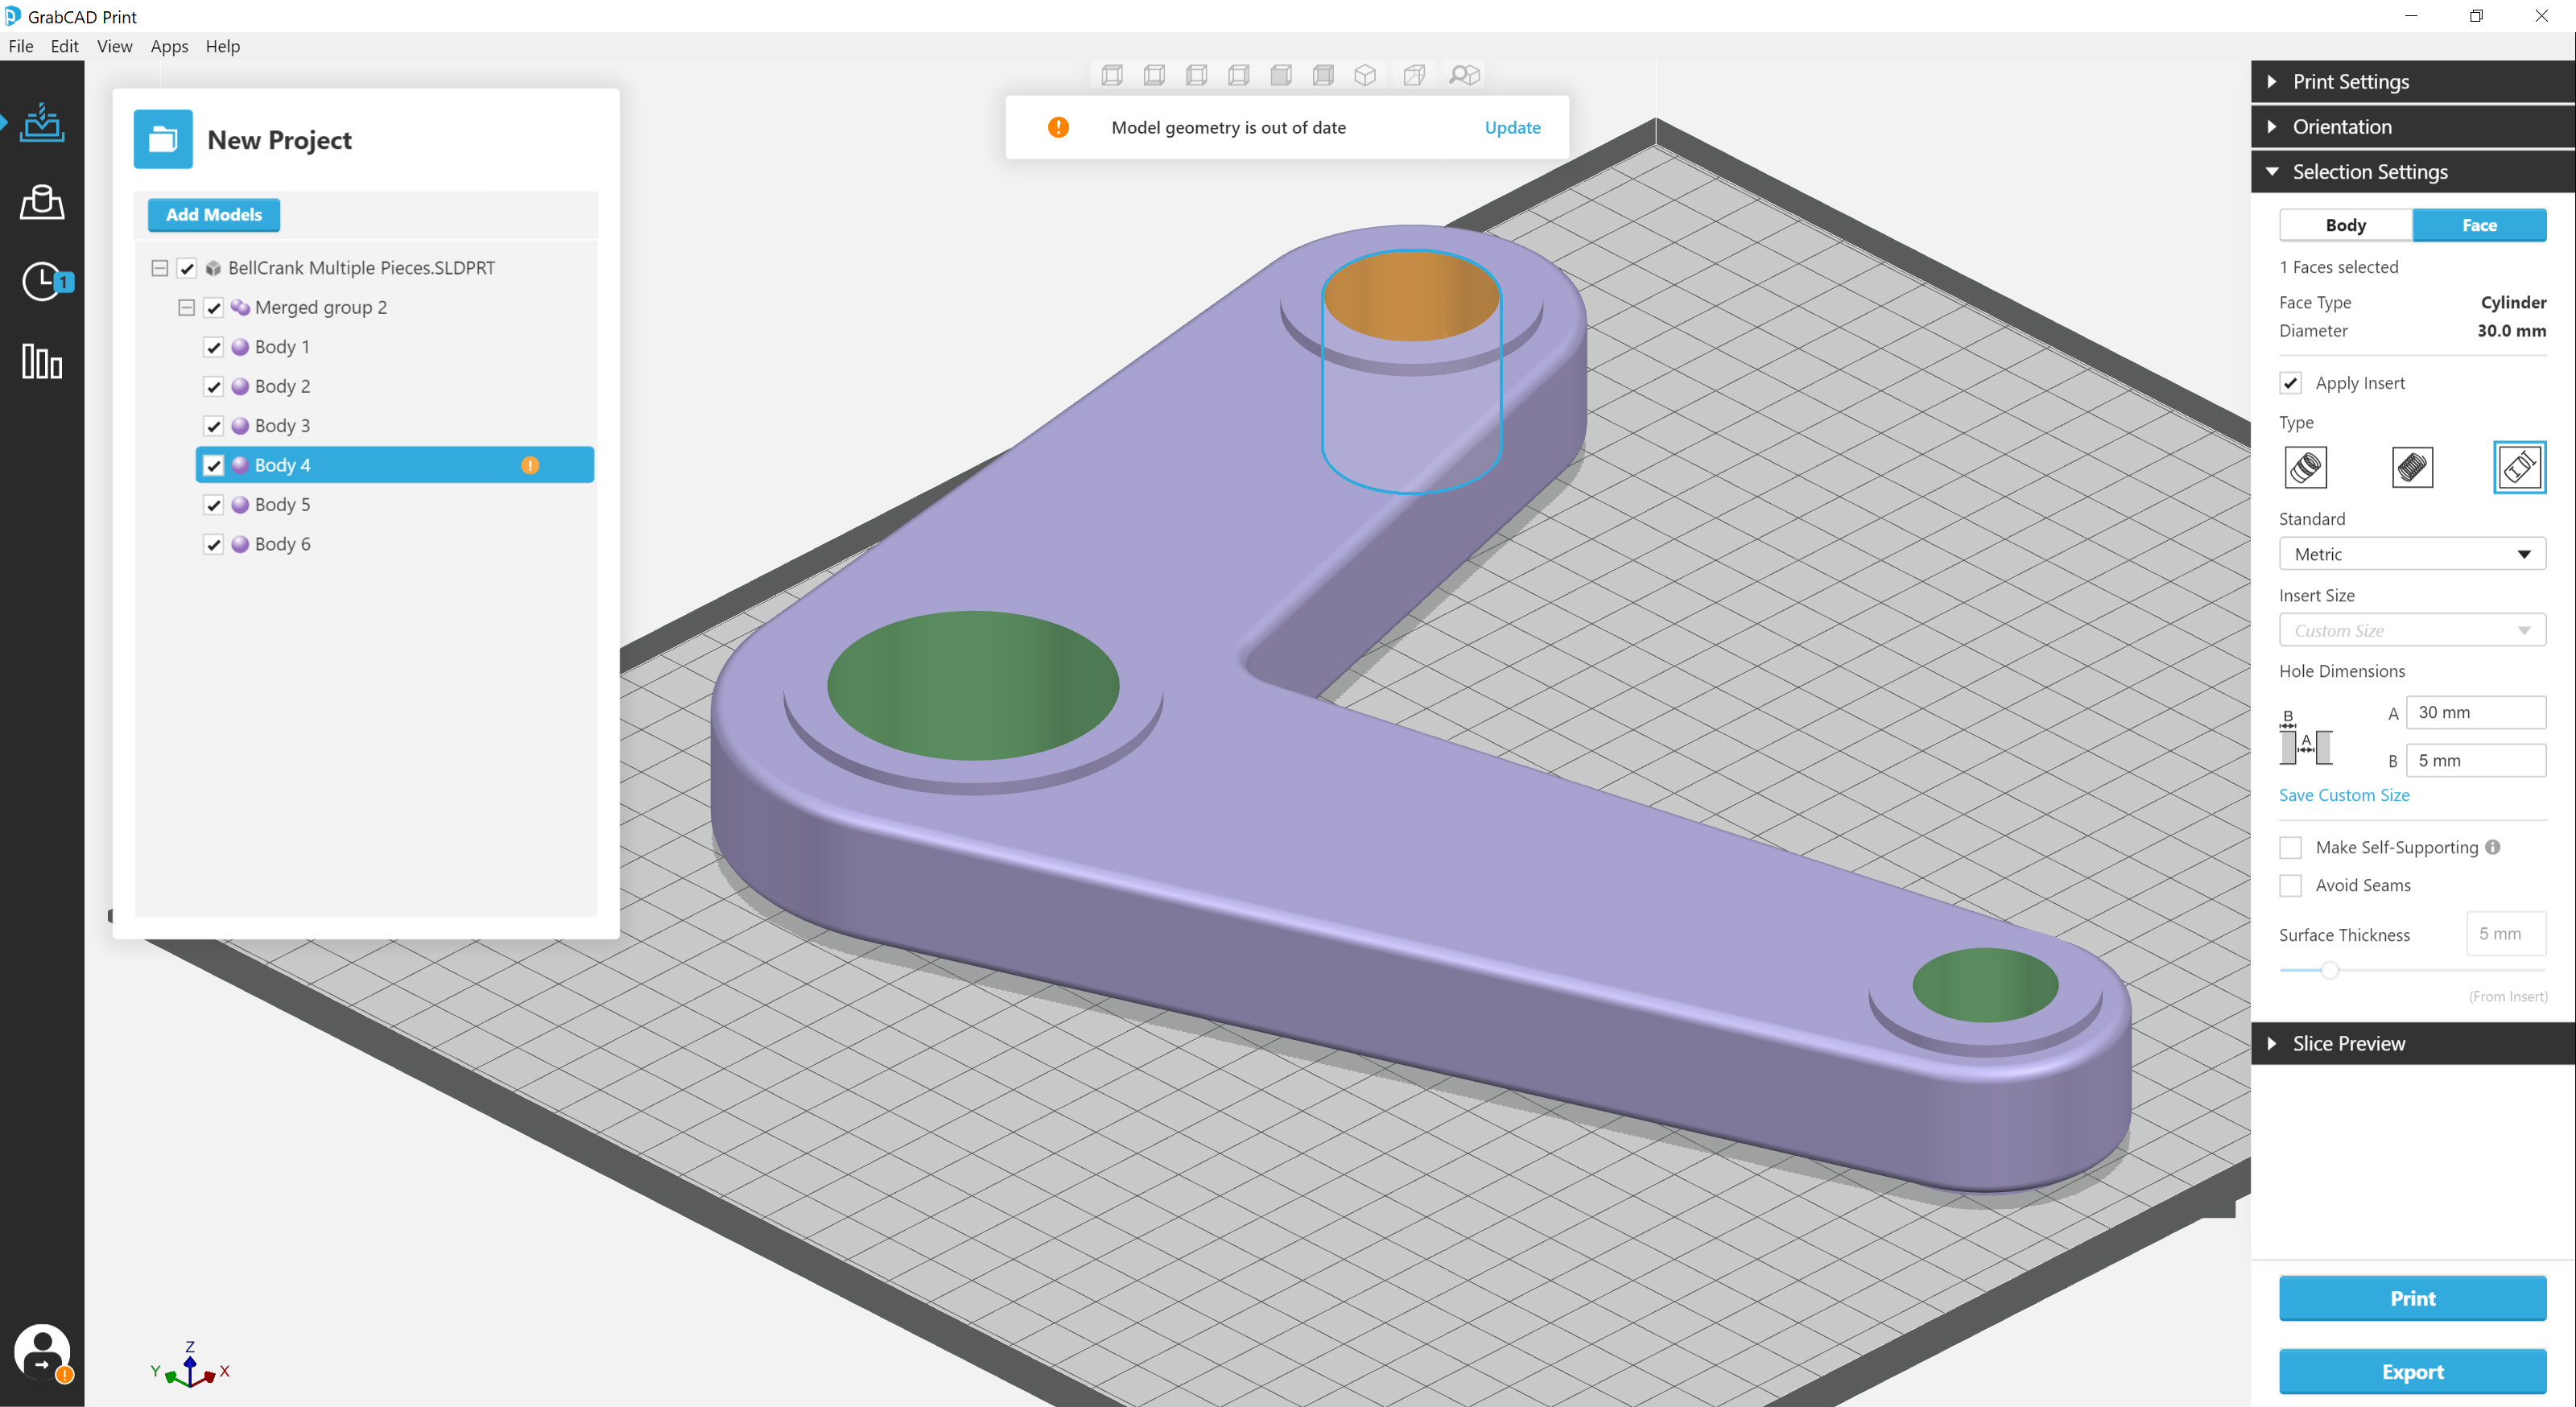 Combining the easy-to-use GrabCAD Print interface with the powerful Stratasys Insight software, Jigs and Fixtures for GrabCAD Print automates previously complex part preparation tasks.